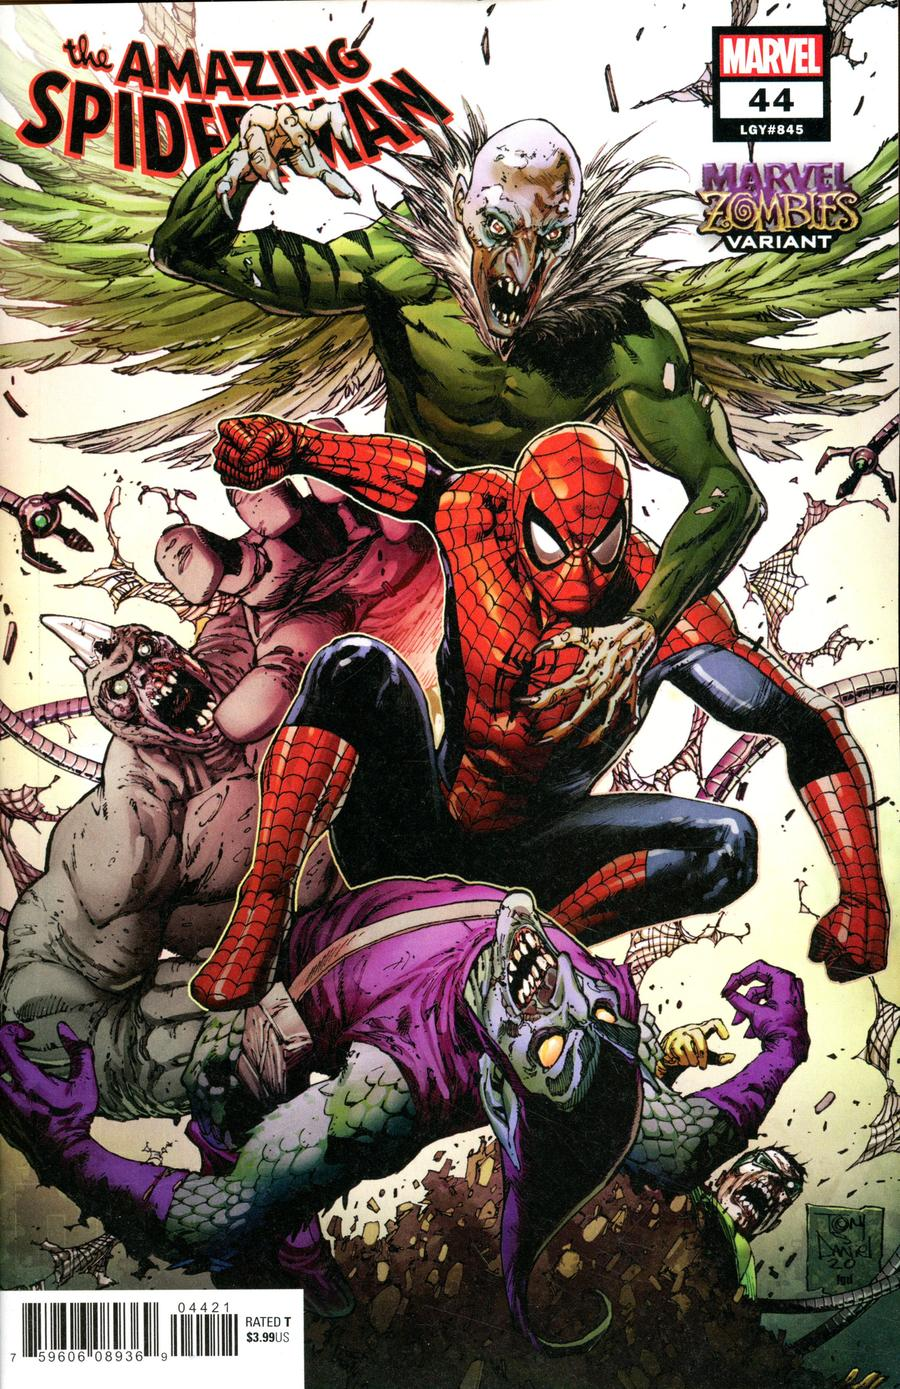 Amazing Spider-Man Vol 5 #44 Cover B Variant Tony S Daniel Marvel Zombies Cover